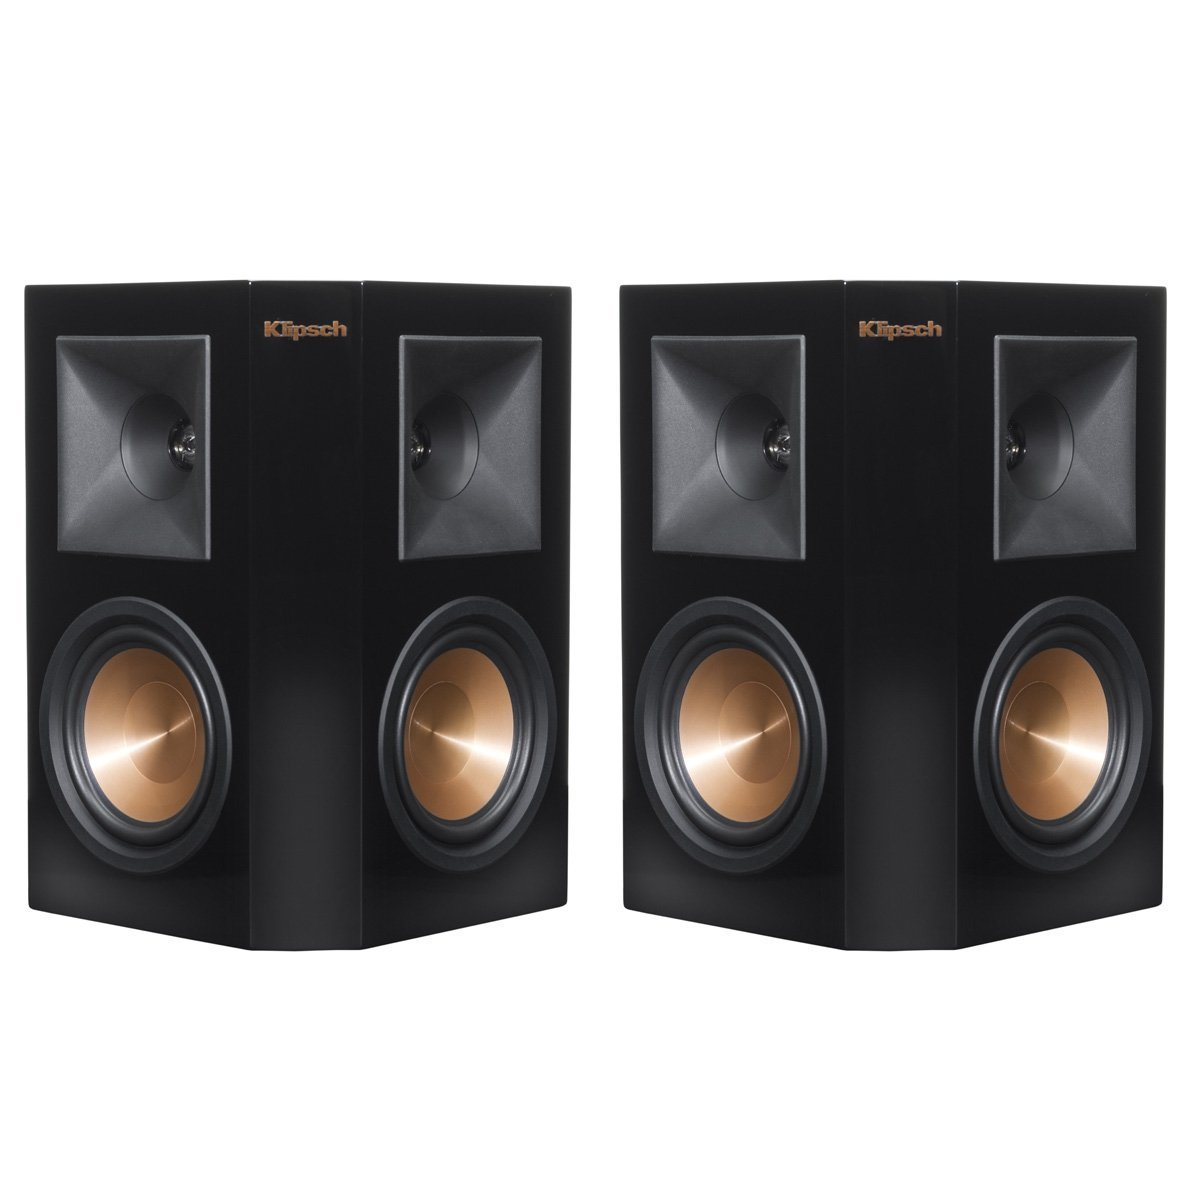 Klipsch RP-240S Reference Premiere Surround Speakers with Dual 4'' Cerametallic Cone Woofers - Pair (Piano Black)